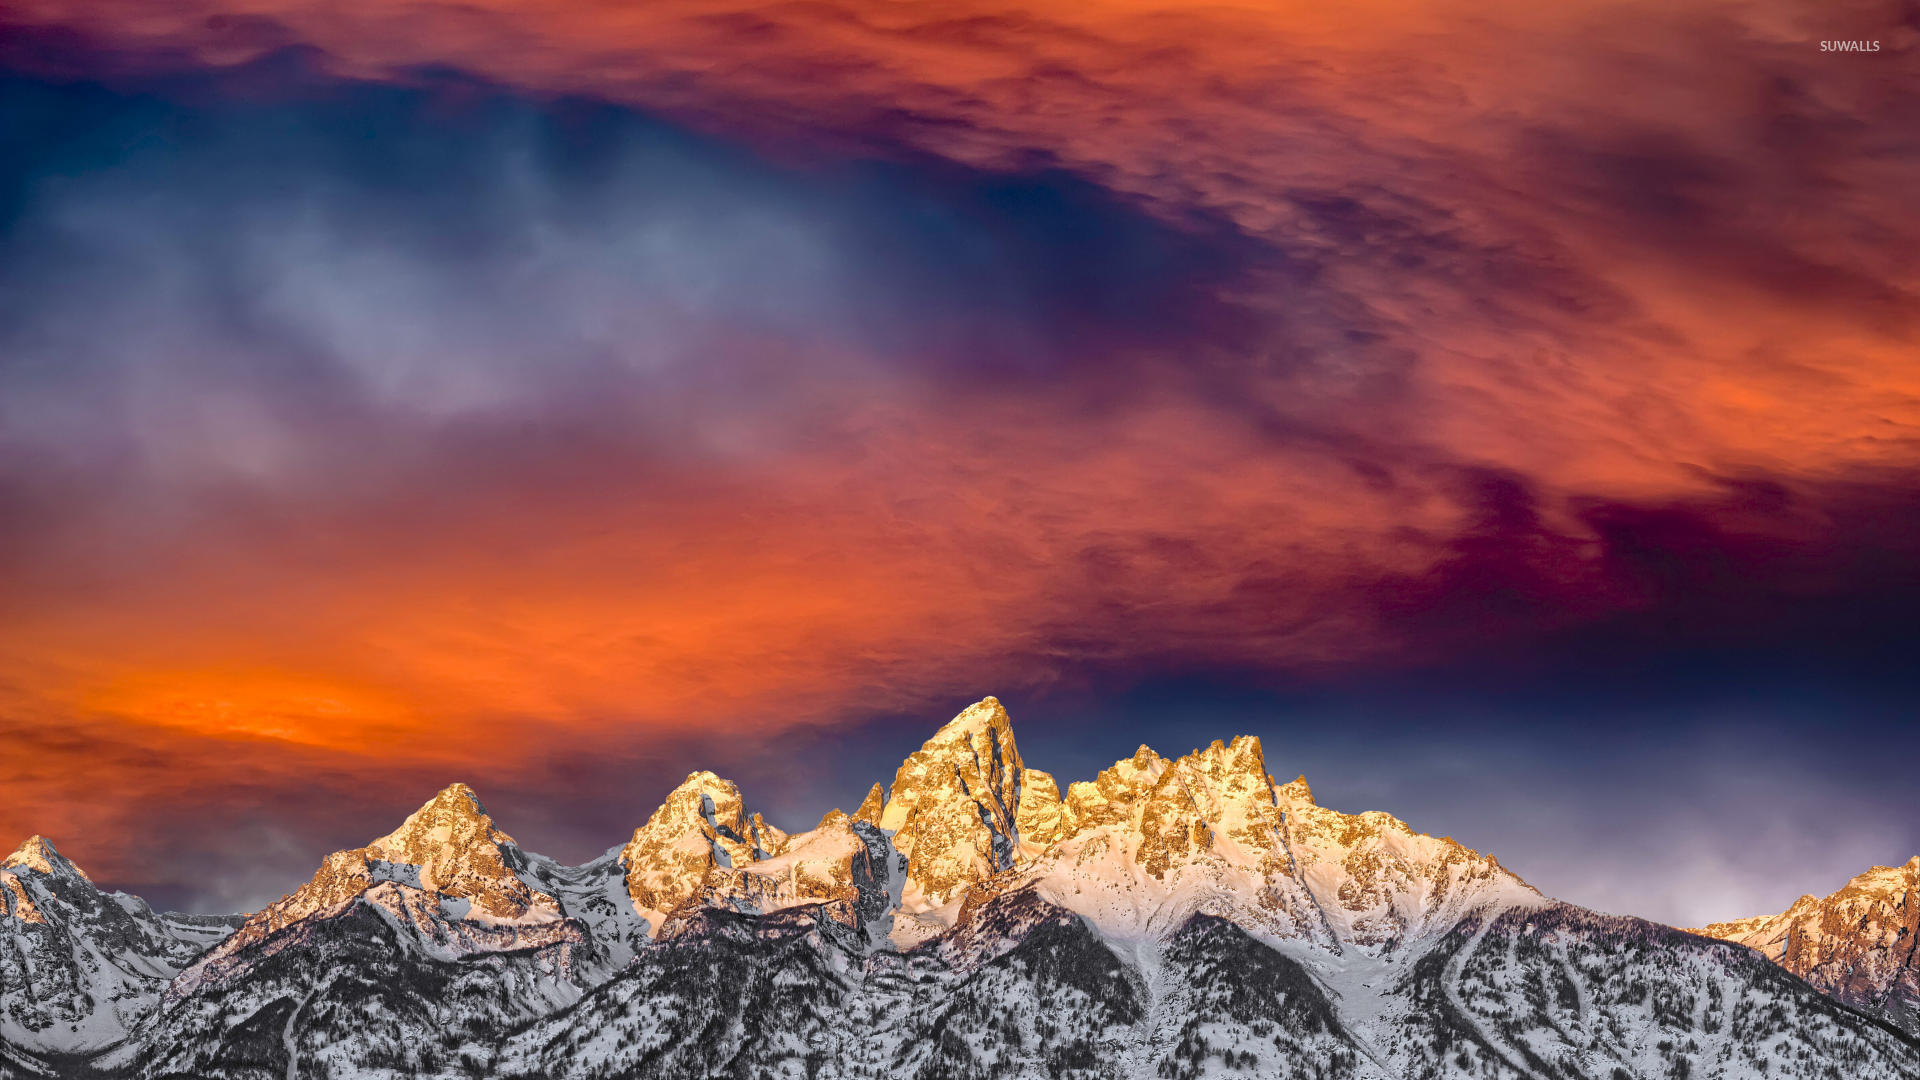 Amazing sunset sky above the snowy mountains wallpaper ...